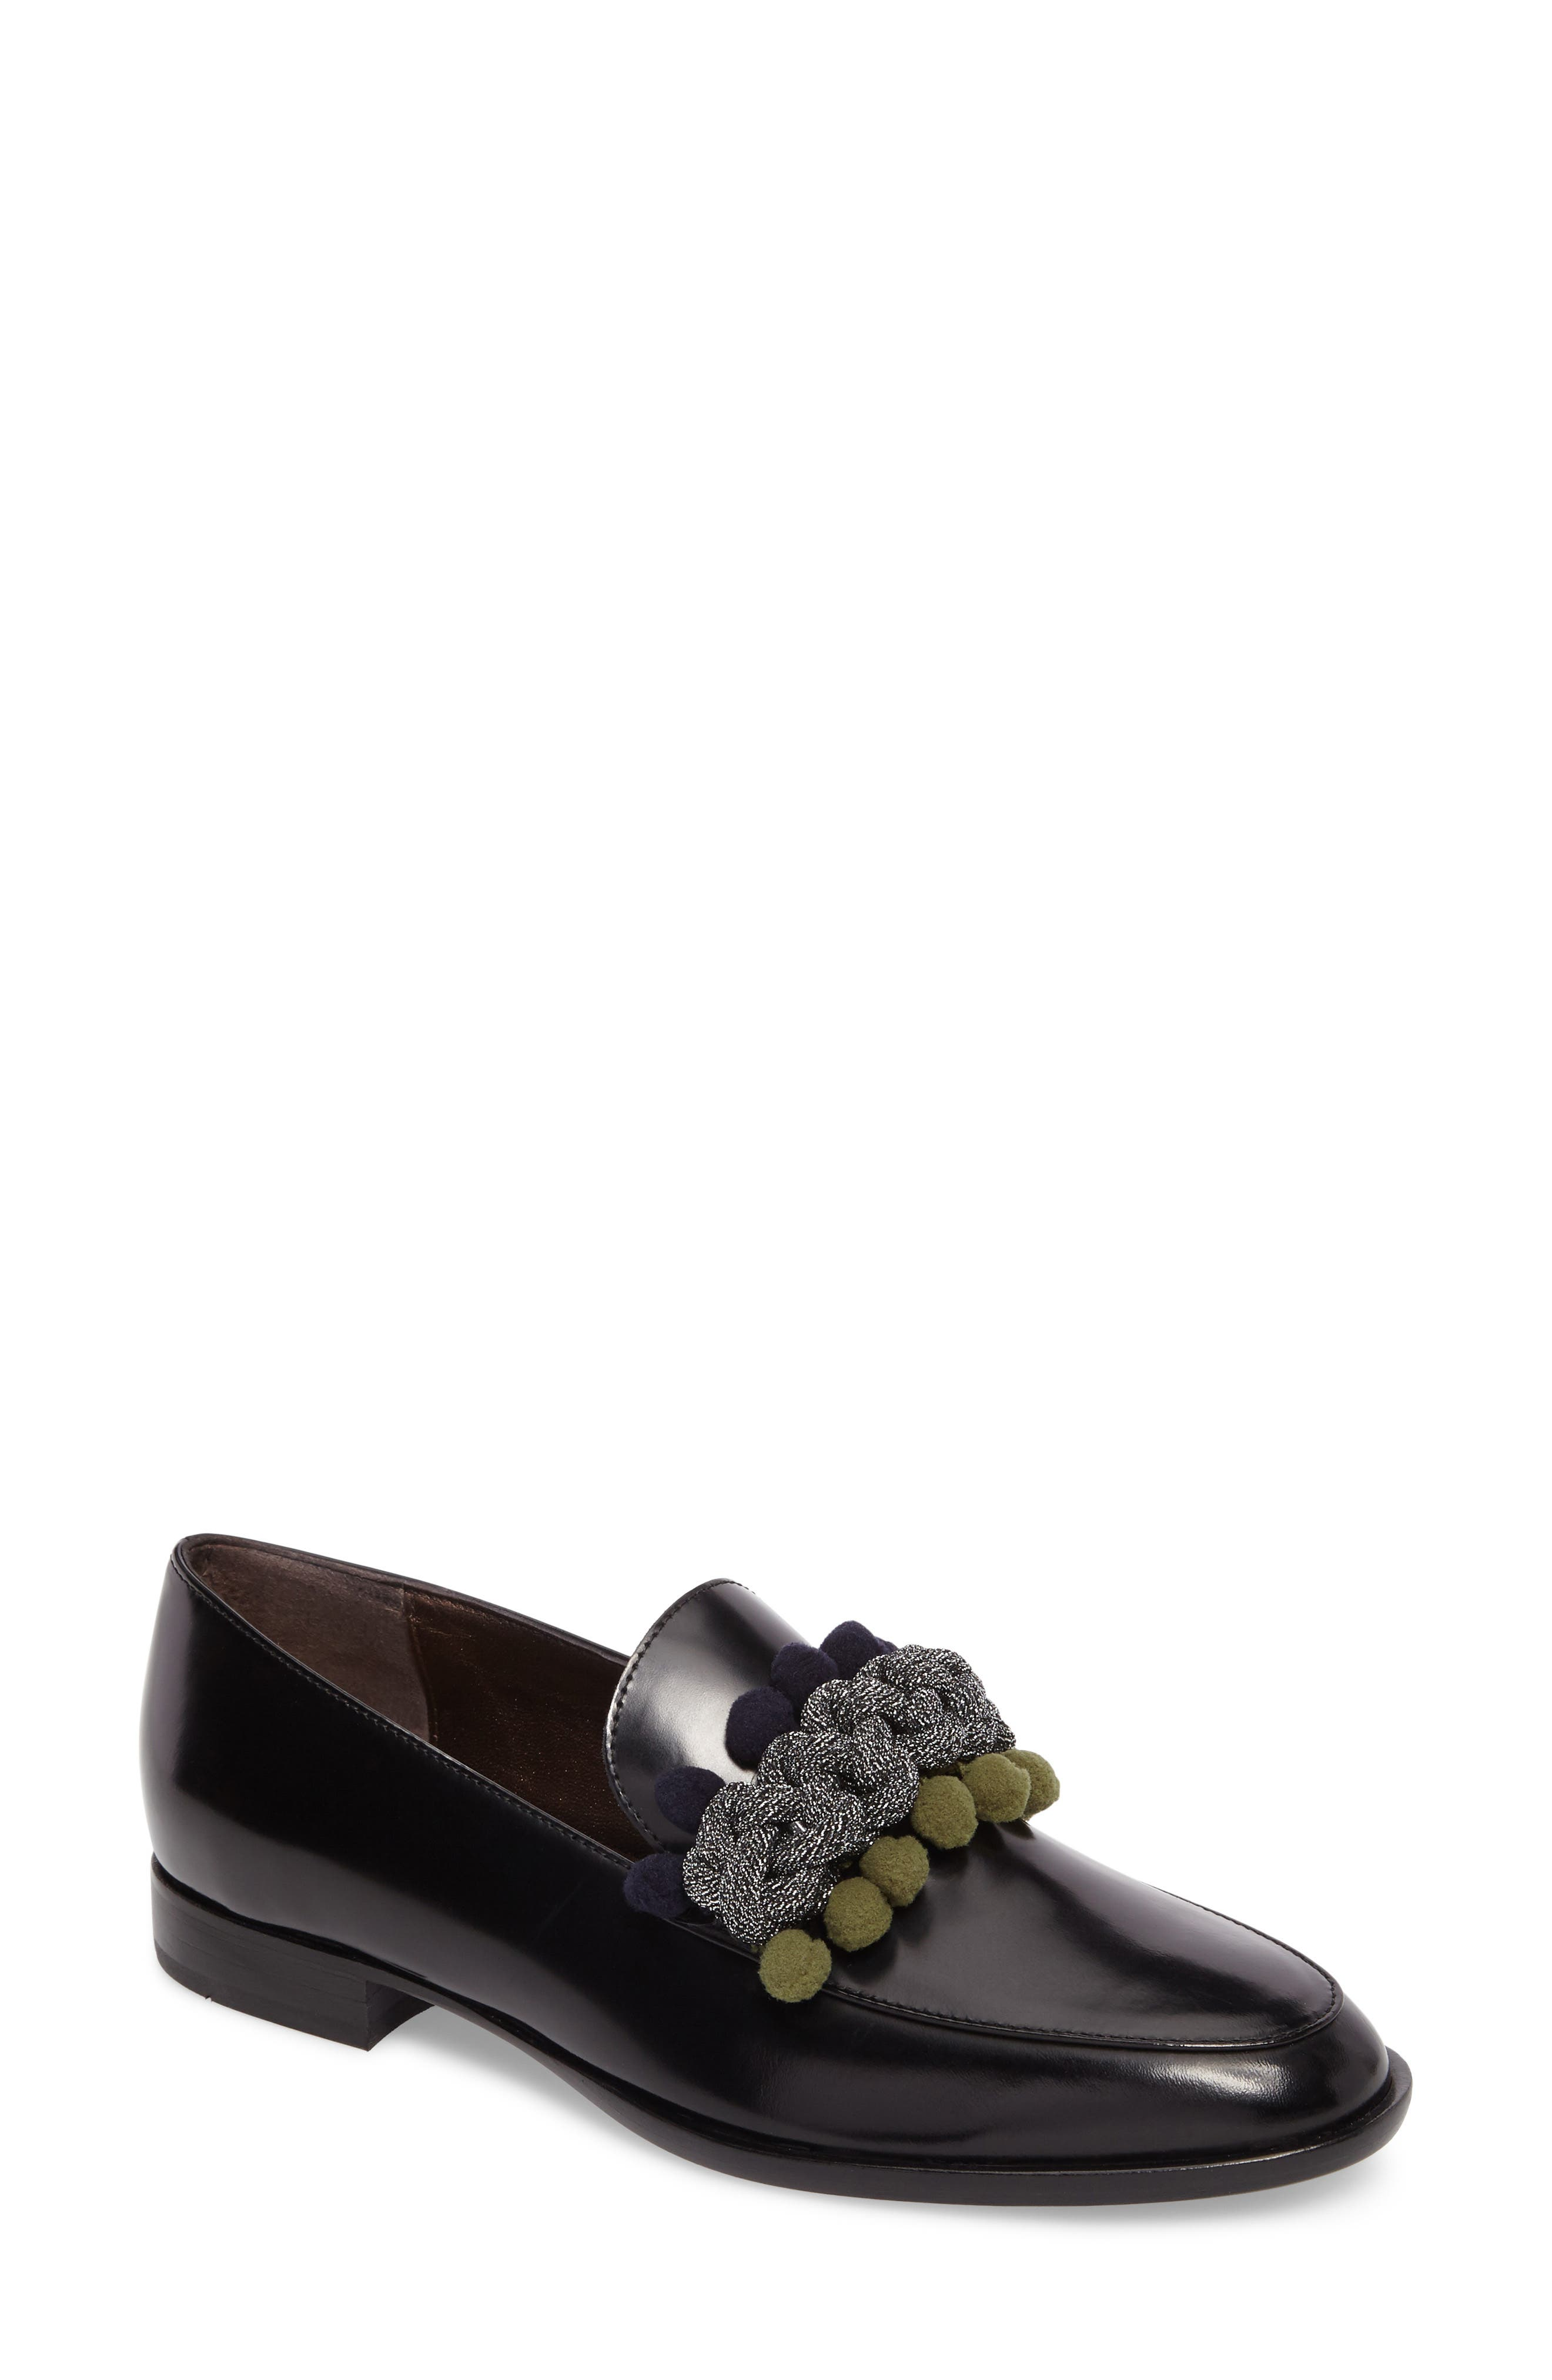 Pom Pom Loafer,                             Main thumbnail 1, color,                             Nero Patent